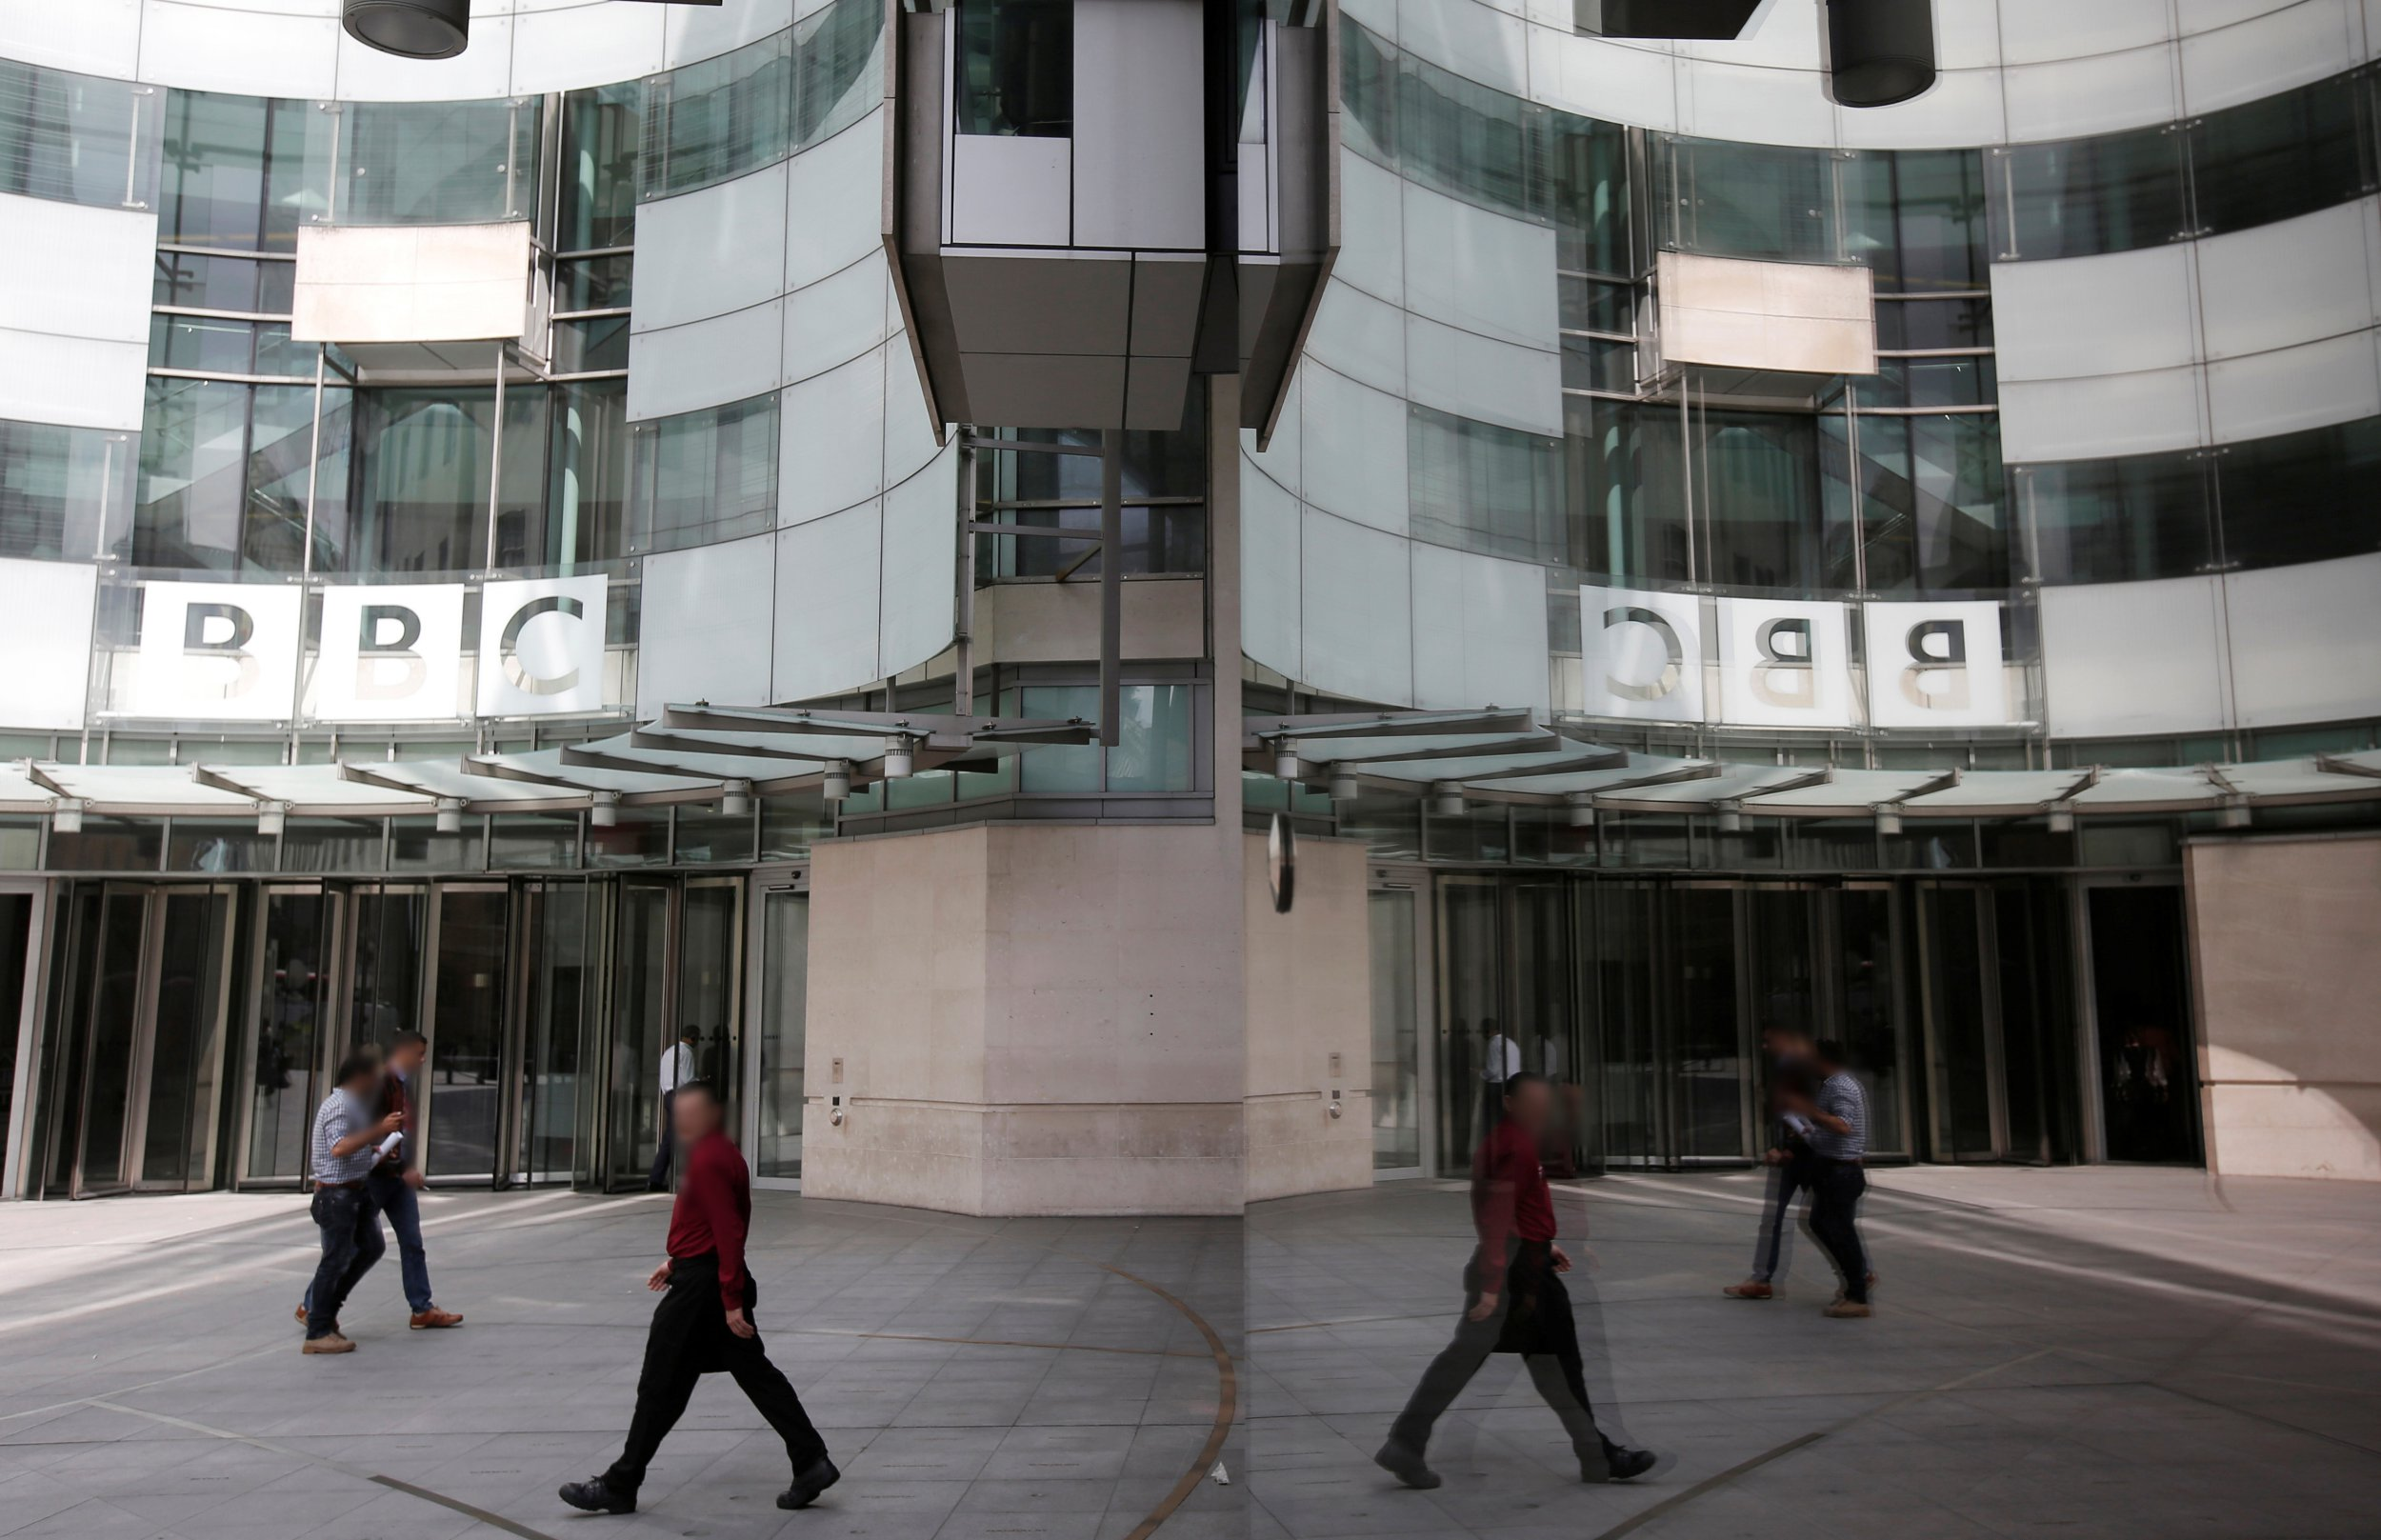 BBC presenter says she tried to kill herself over pay arrangements